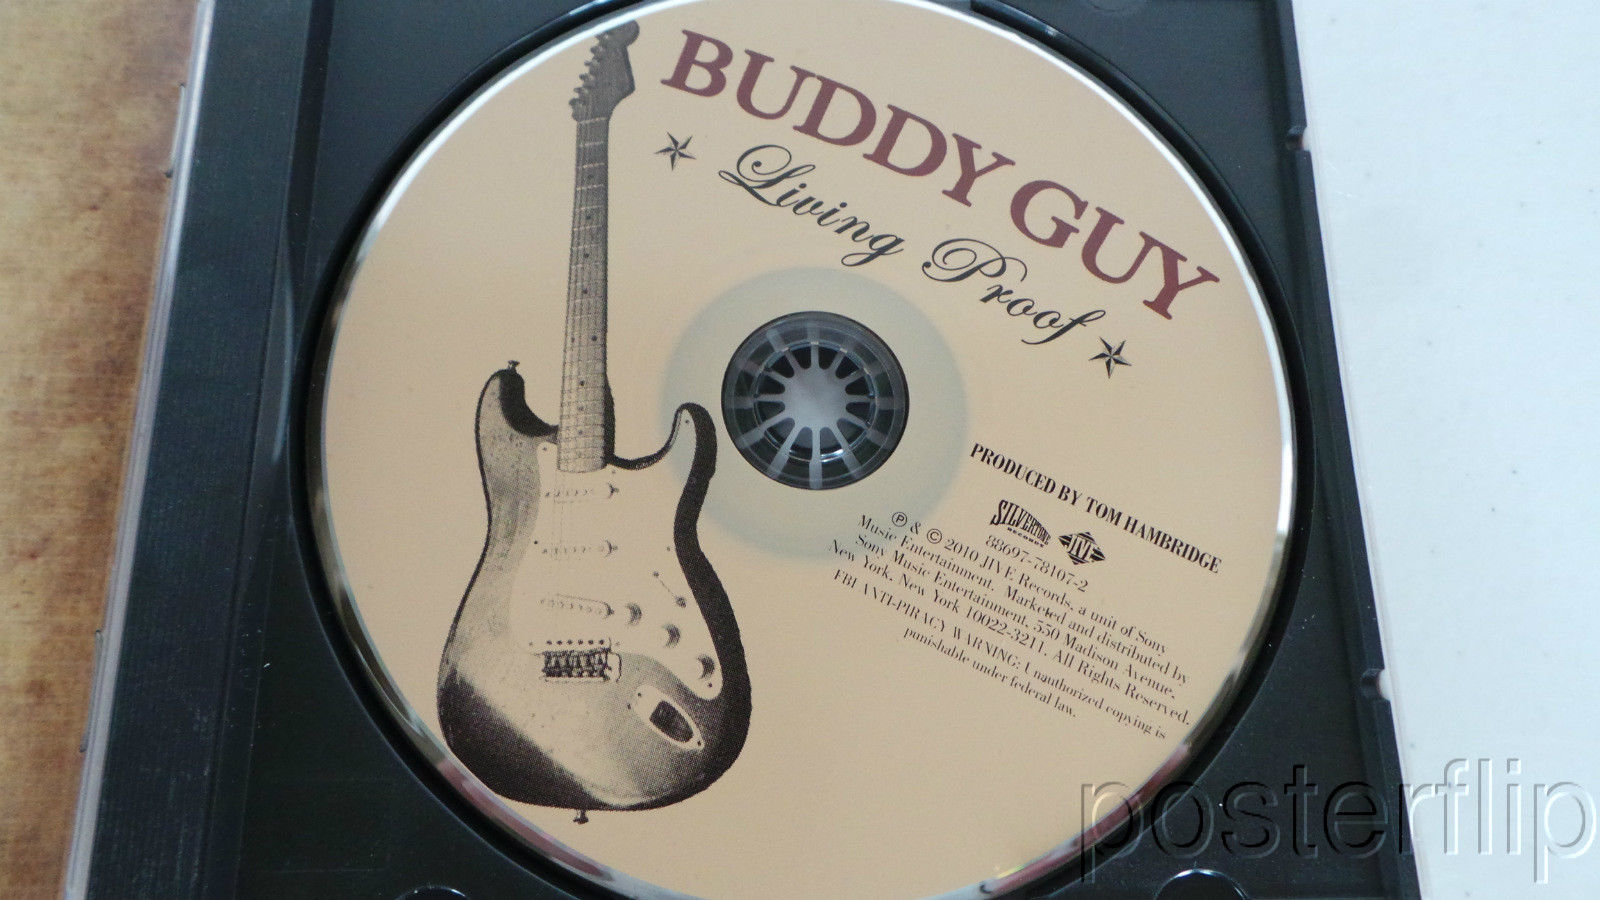 Buddy Guy Living Proof Autographed CD Booklet + CD